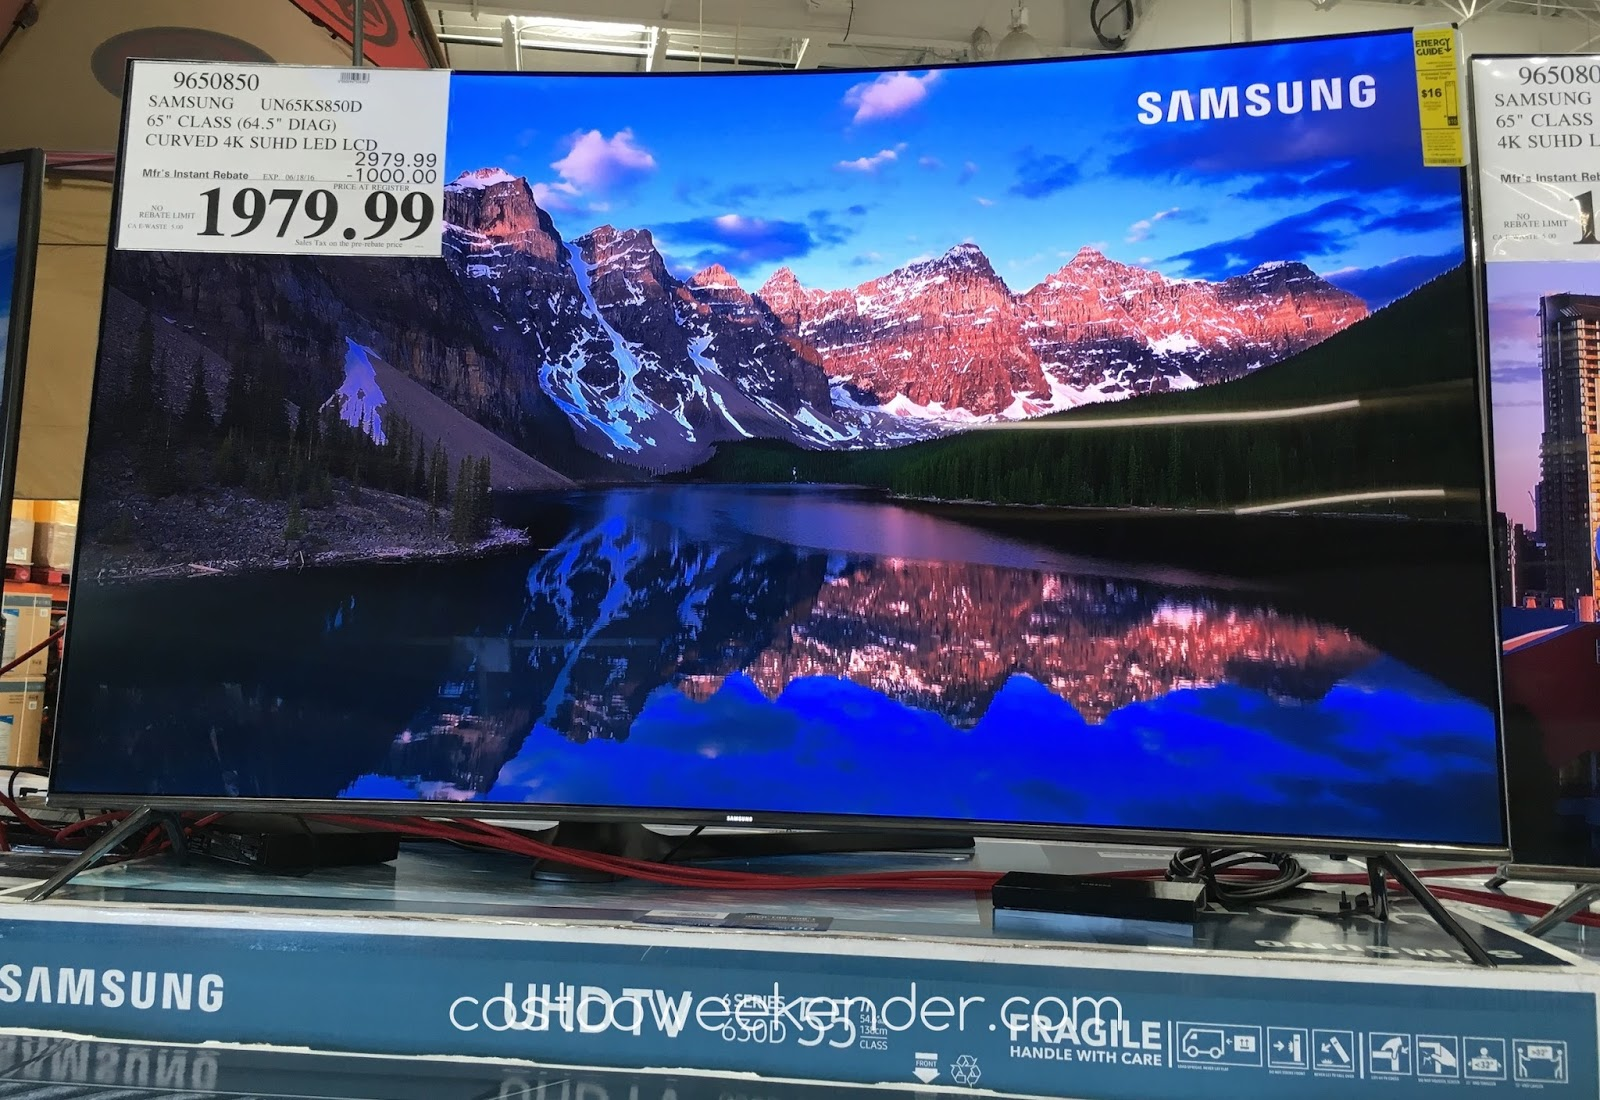 samsung un65ks850d 65 inch curved suhd led lcd tv costco. Black Bedroom Furniture Sets. Home Design Ideas